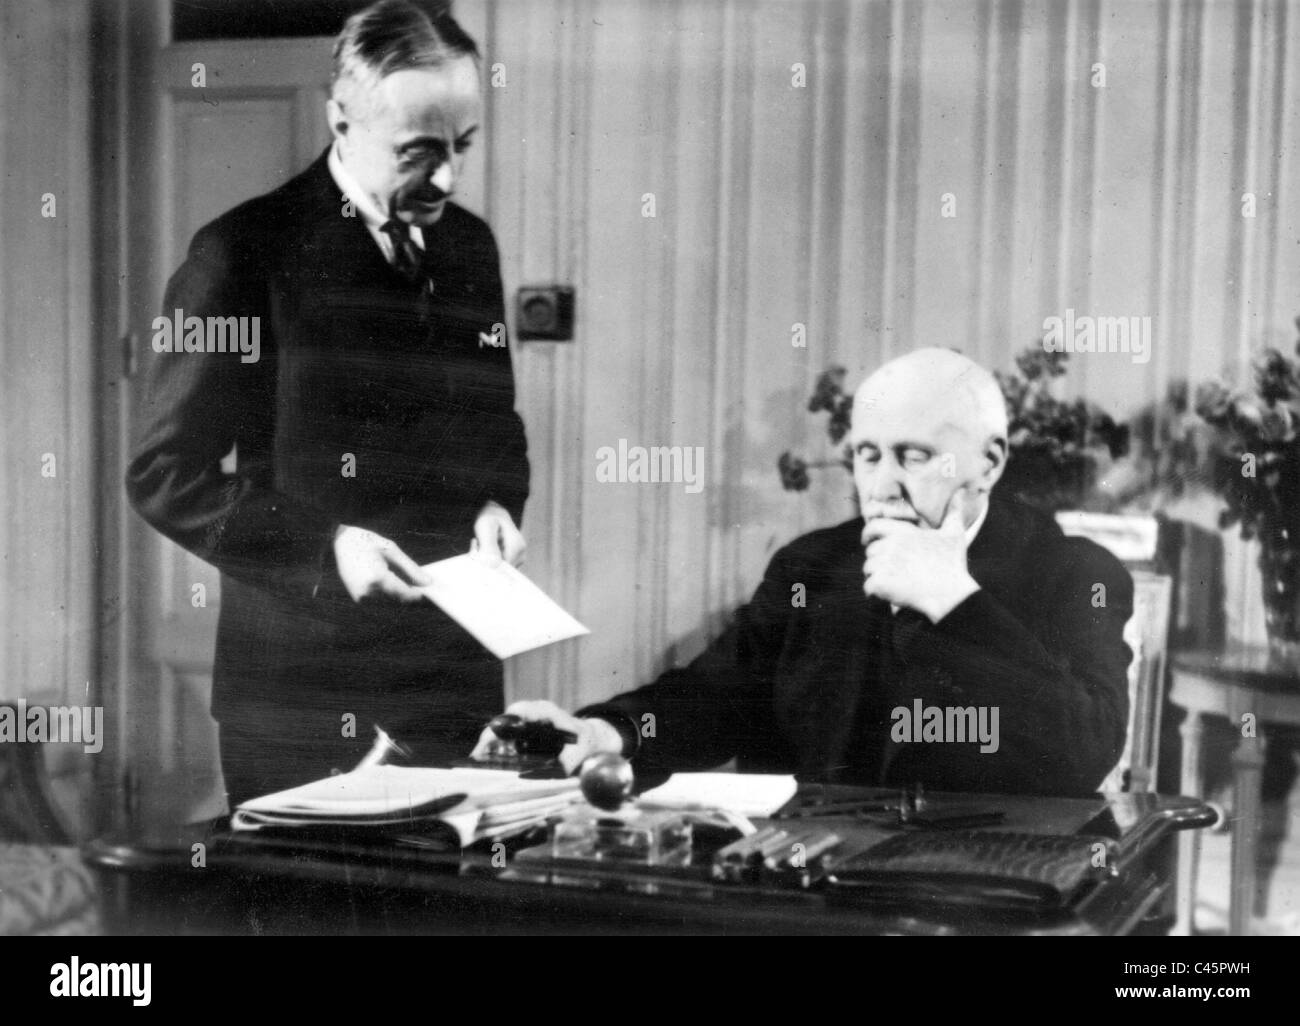 Henri Philippe Petain in his study, 1941 - Stock Image